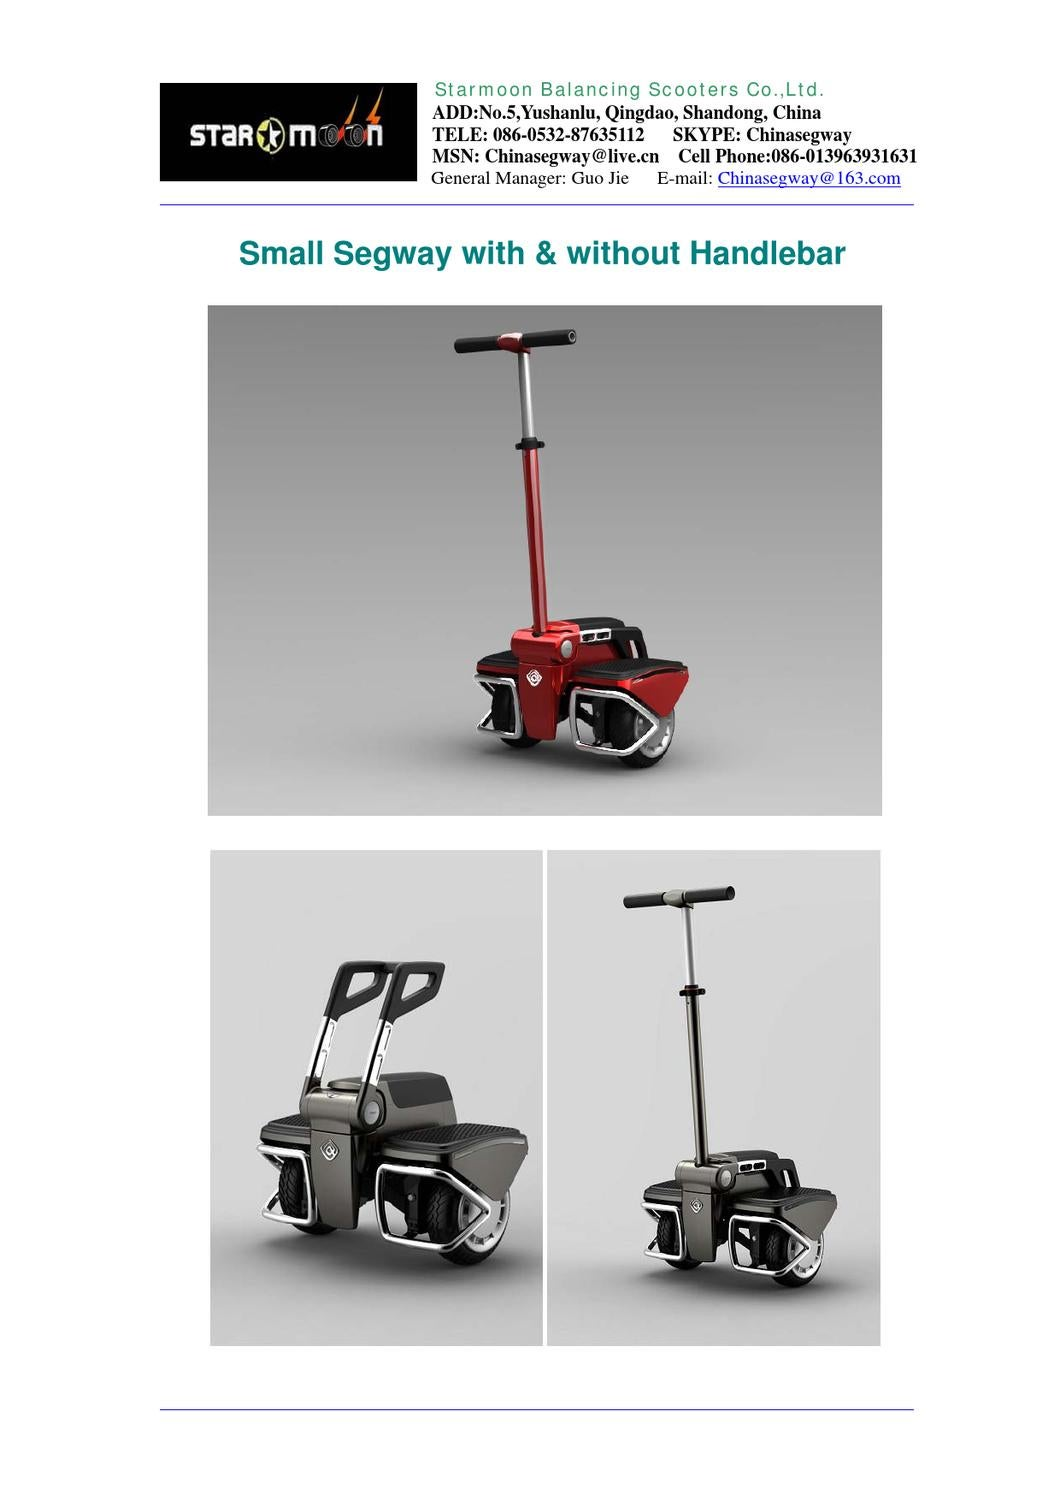 Small Segway With Amp Without Handlebar By Guo Jie Issuu